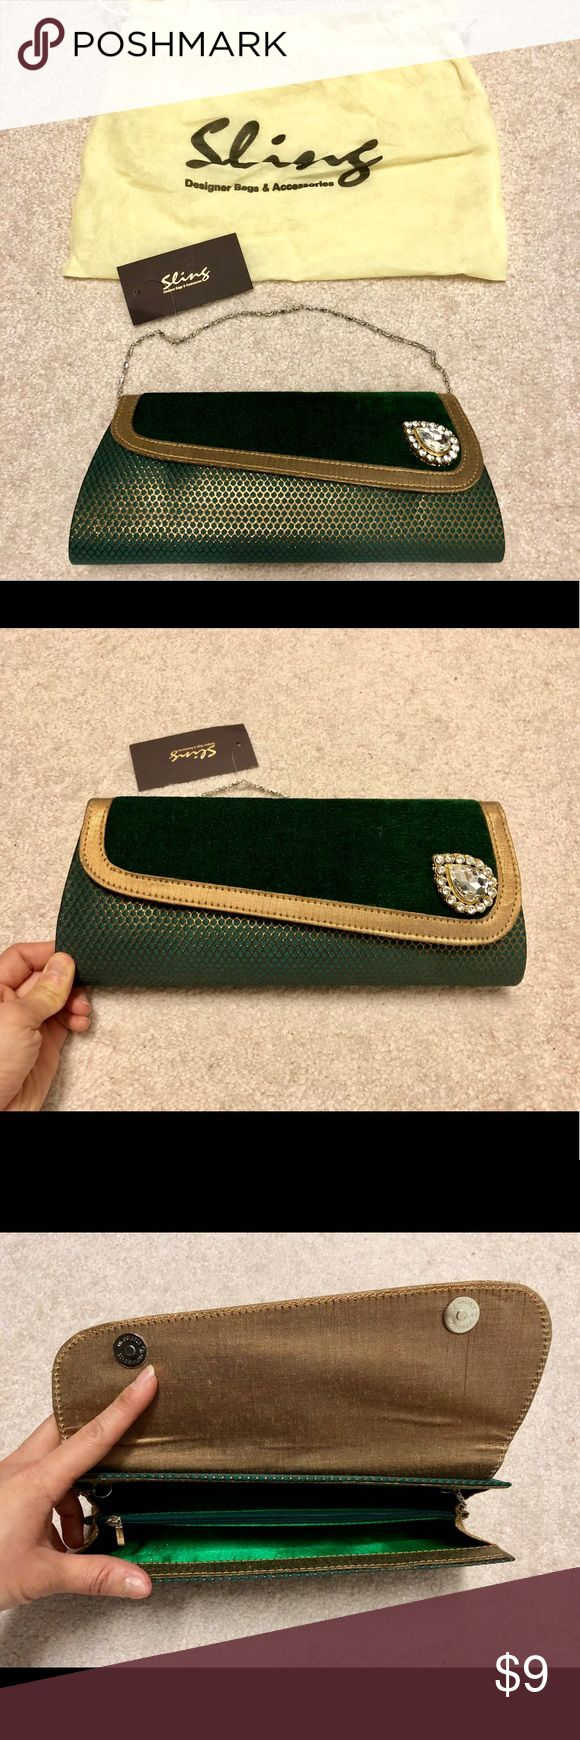 NWT Velvet Green and Gold Clutch Bag Moving Sale!  Beautiful valves green and gold clutch evening bag with rhinestone decoration.  Brand new with tag!  Middle compartment inside. Lined with gold fabric. Includes metal chain for shoulder. Magnetic closure.   Downsizing my closet for move. Please check out my other items for sale!  Lots of XS, S, 0, 00, 0P clothing for sale. Bundle, group, and save!  Thanks. Sling Bags Clutches & Wristlets